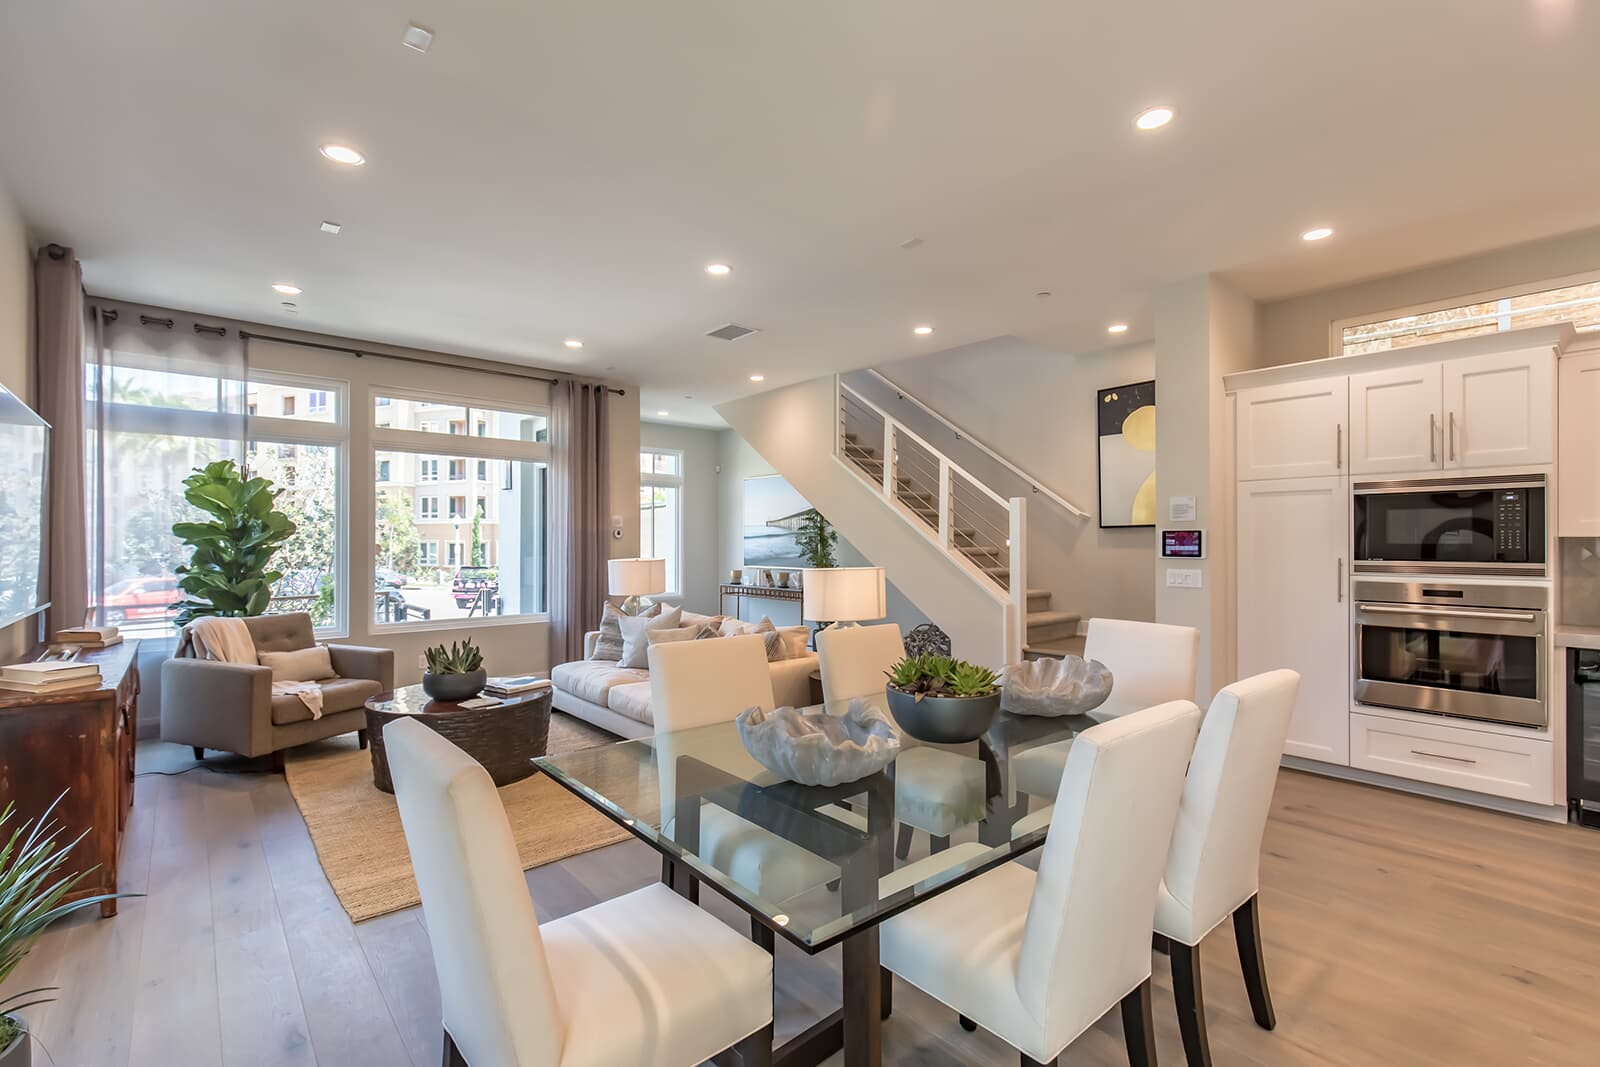 Residence 2 dining room | The Collection at Playa Vista in Los Angeles, CA | Brookfield Residential